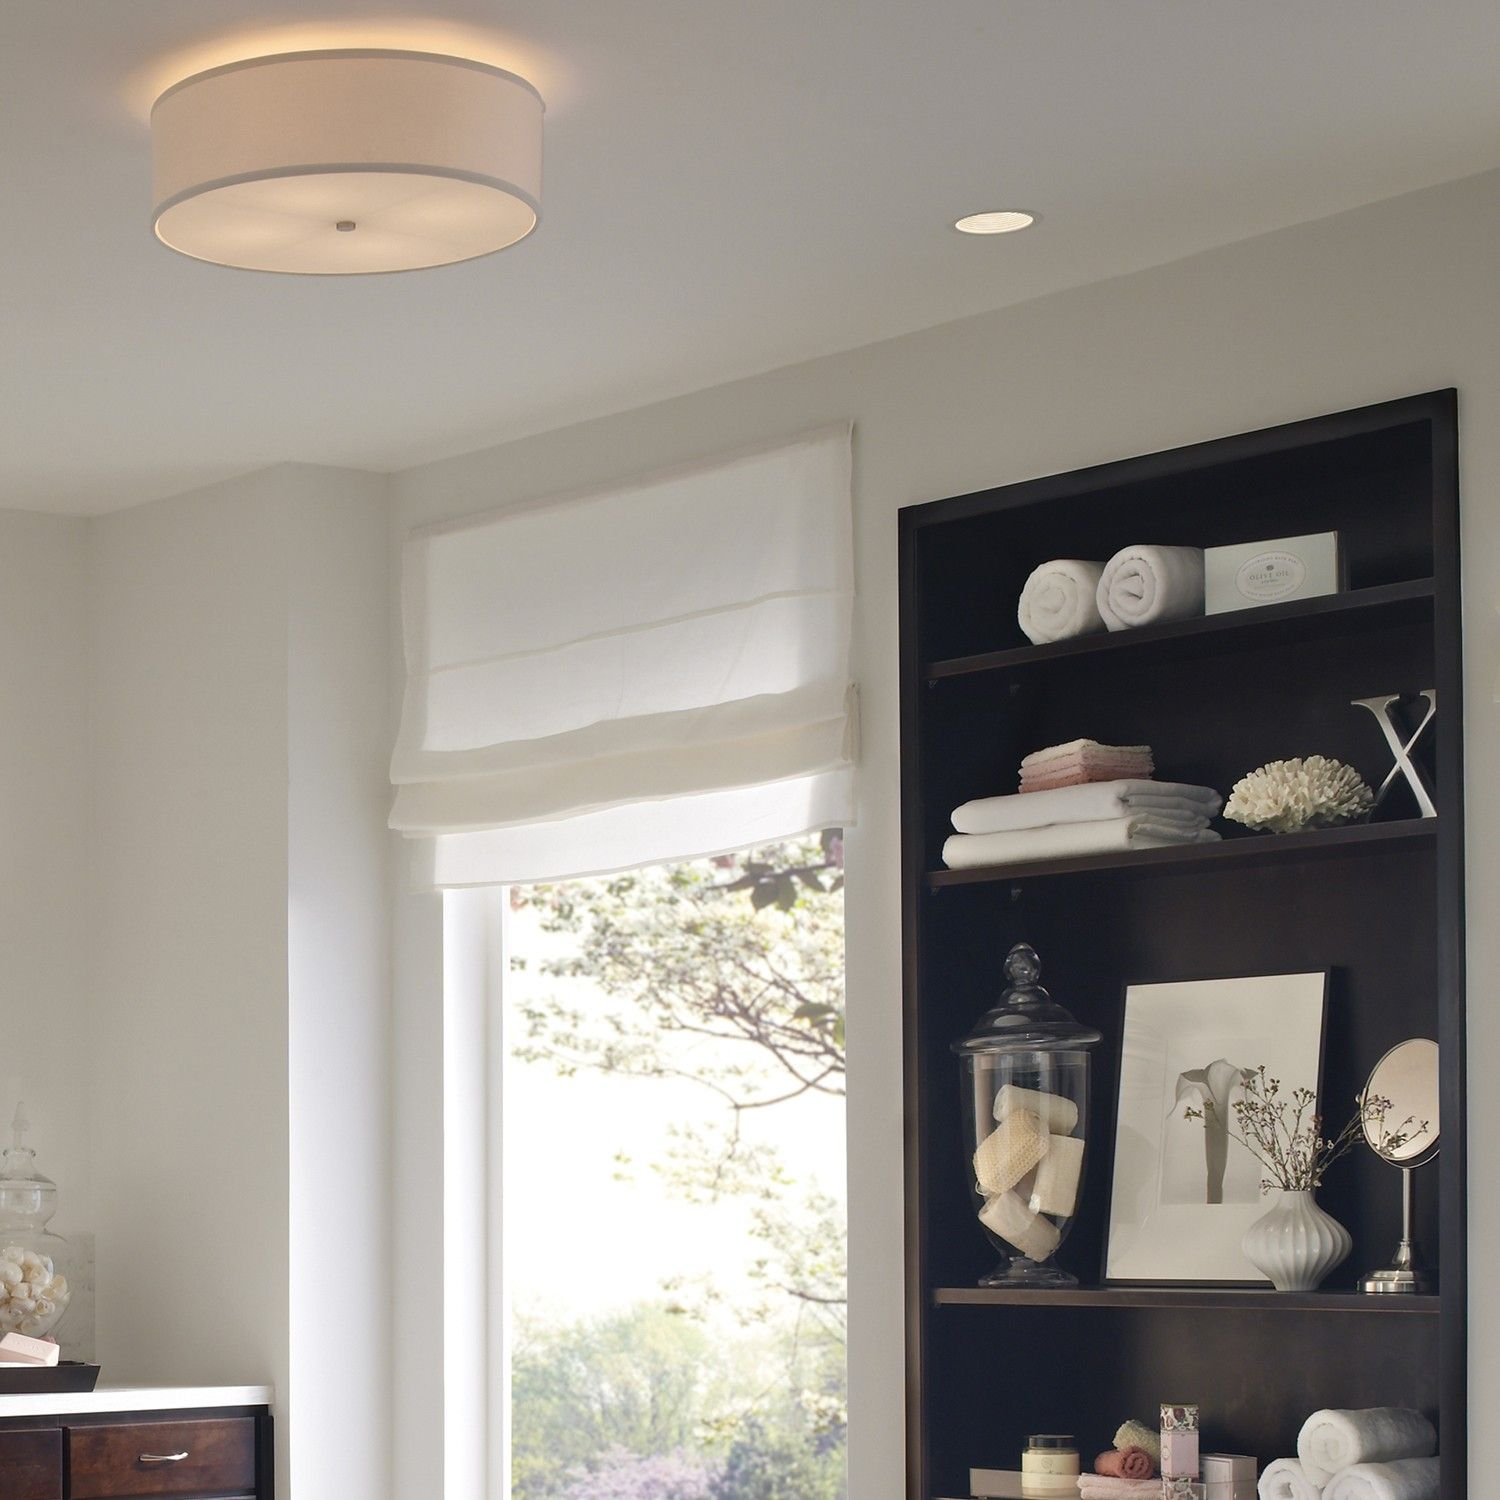 Dramatic Lighting For Low Ceilings Ylighting Ideas Low Ceiling Lighting Kitchen Lighting Fixtures Ceiling Light Design